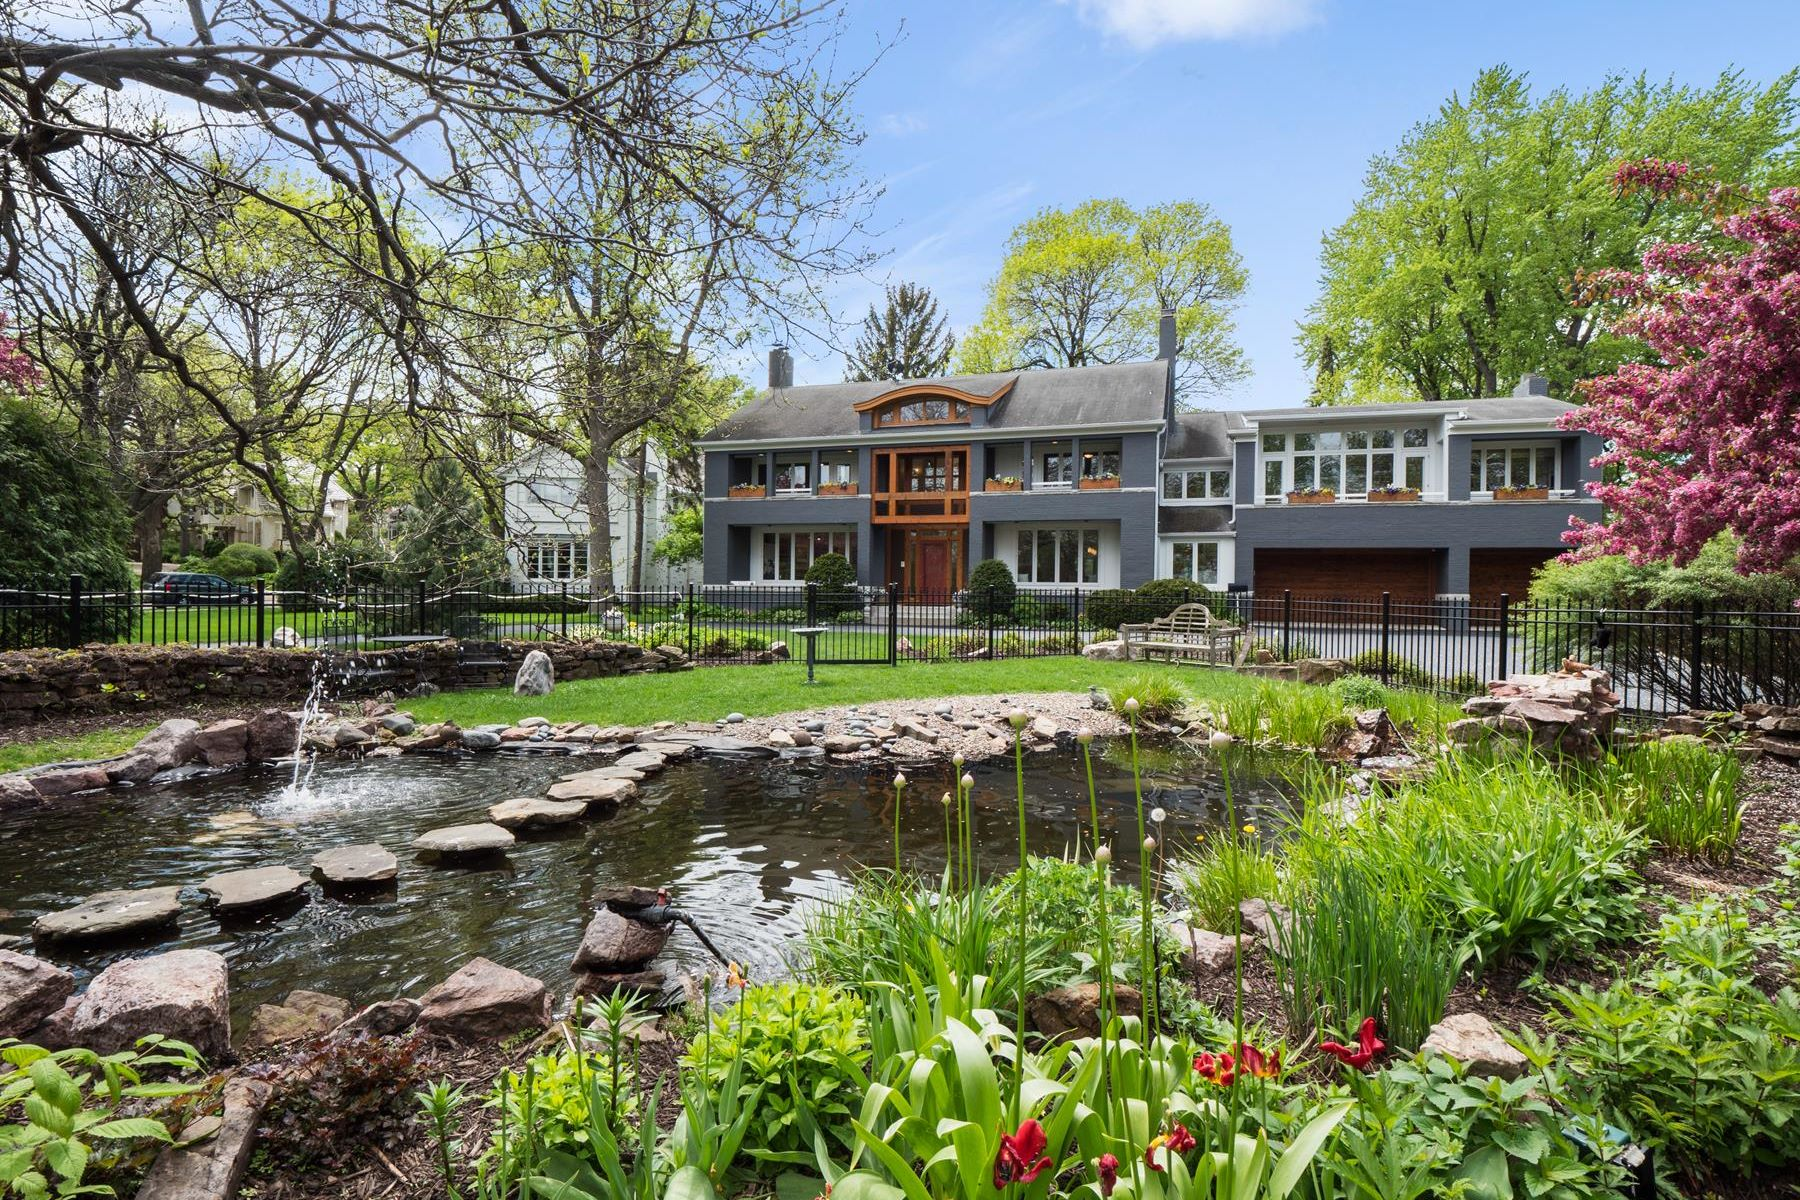 Single Family Homes for Sale at 4728 W Lake Harriet Parkway Minneapolis, Minnesota 55410 United States